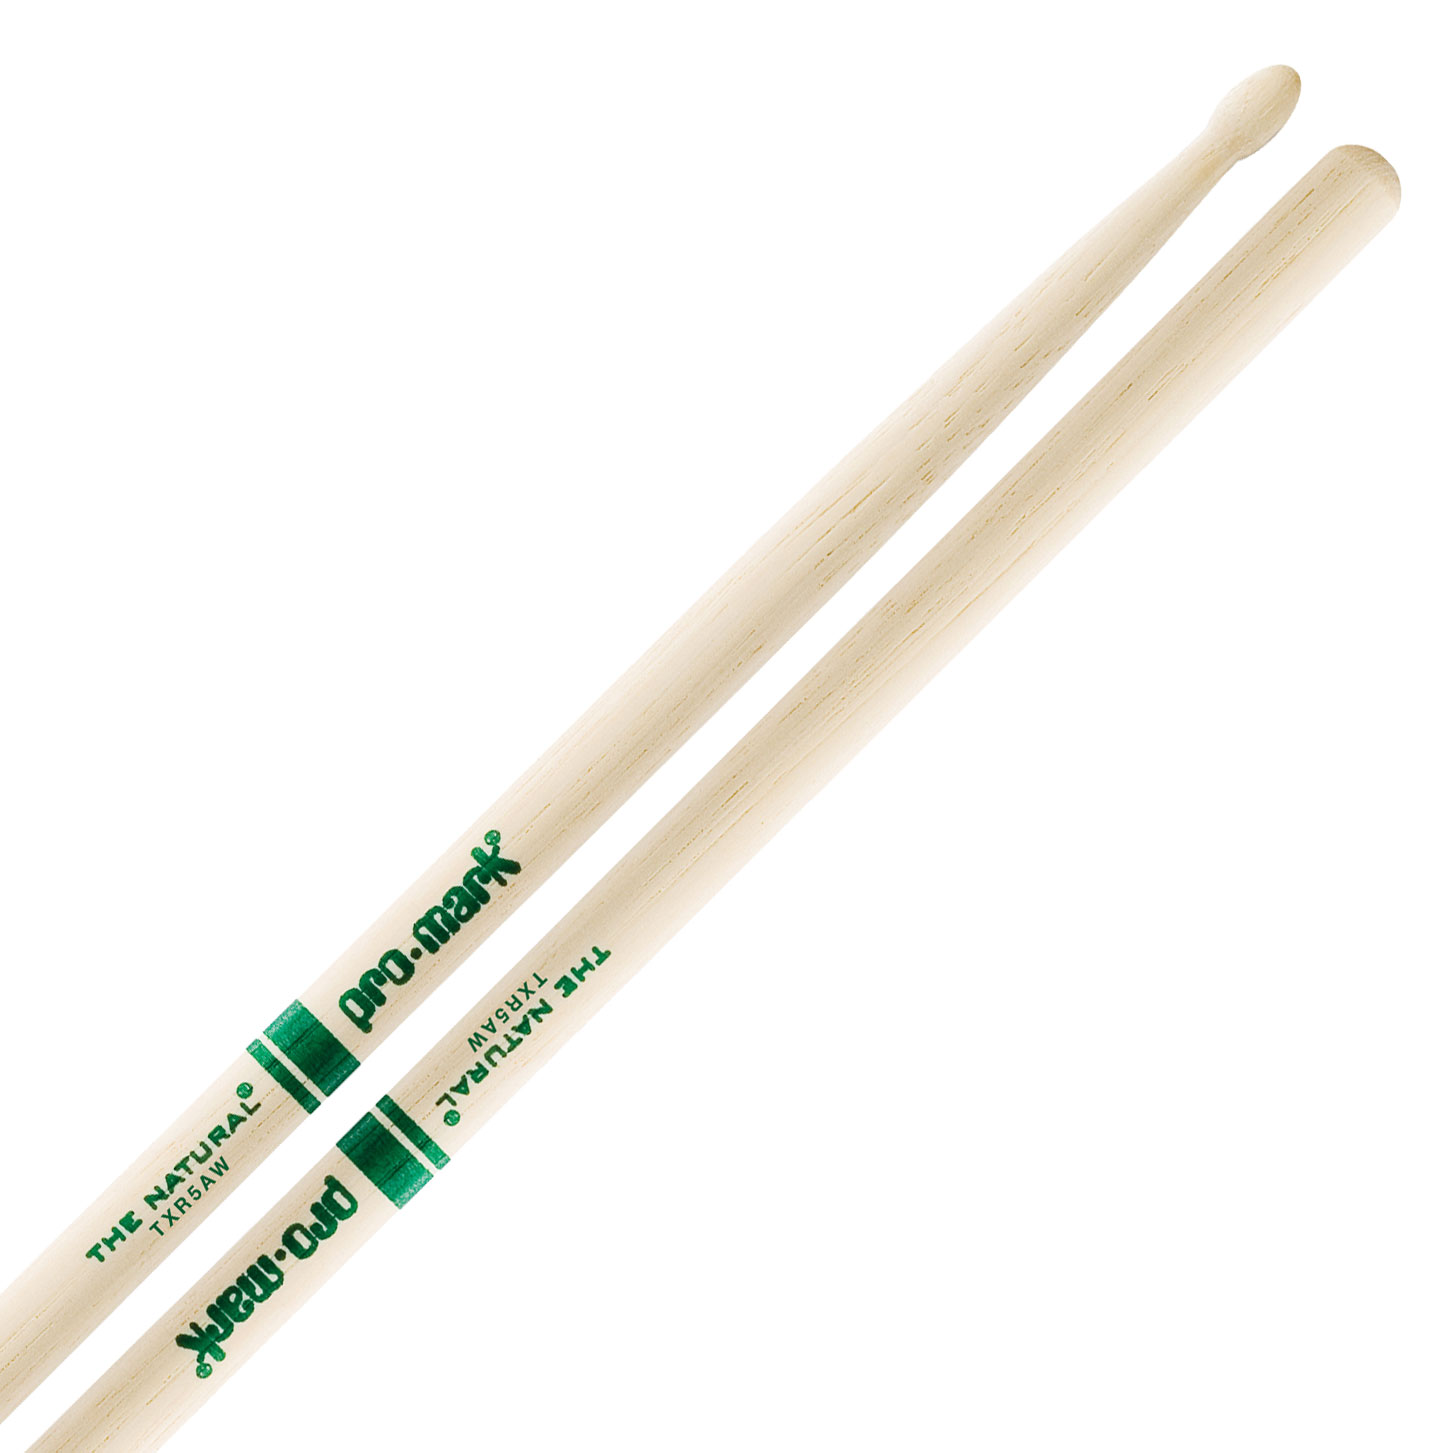 Promark American Hickory 5A Wood Tip Drumsticks